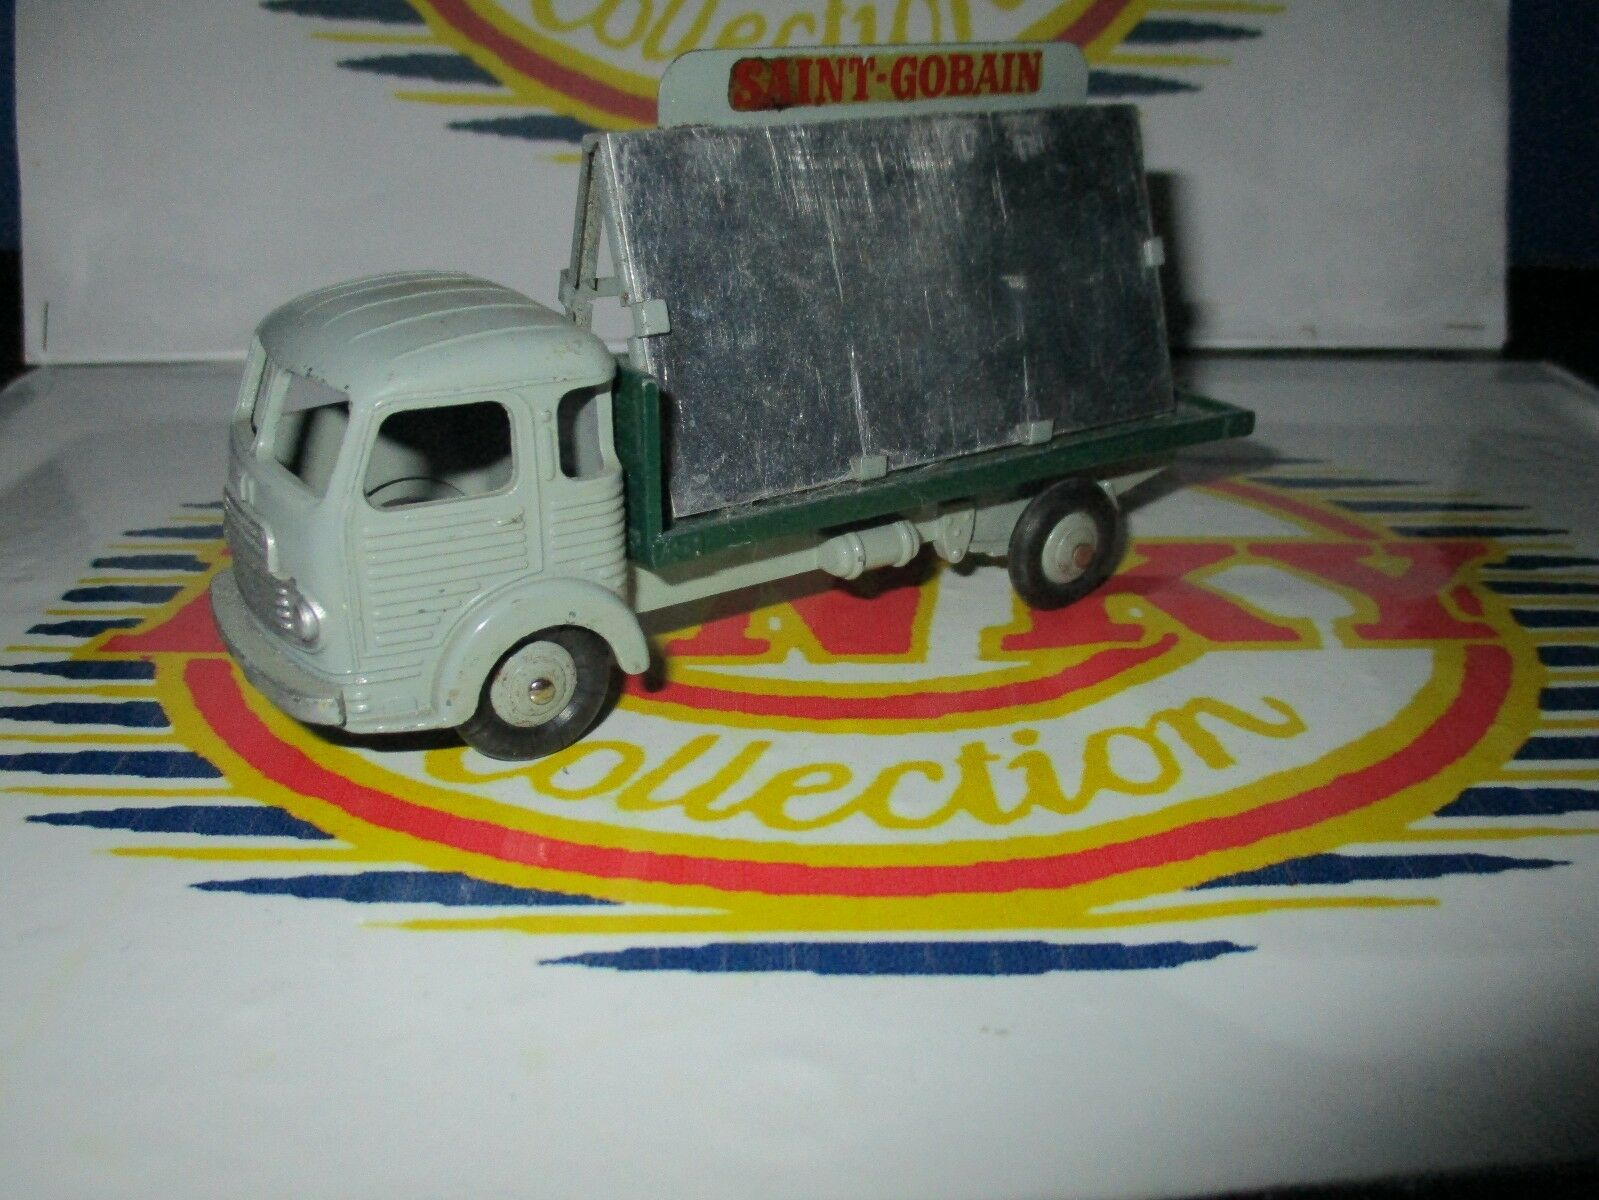 DINKY TOYS SIMCA CARGO MIROITIER  RÉF 33 MAD IN FRANCE